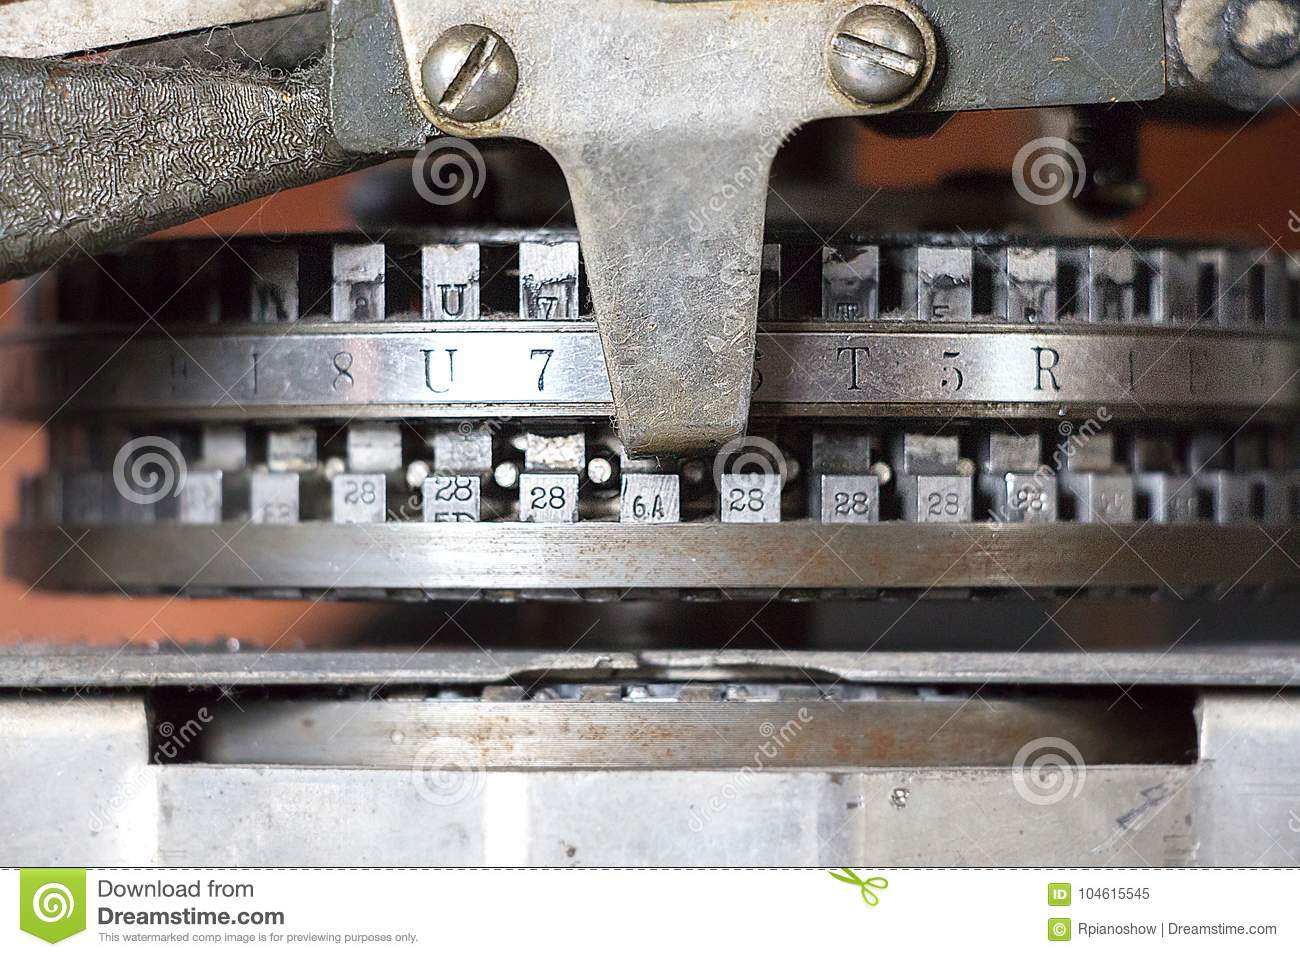 detail of a vintage dog tag maker machine stock image image of